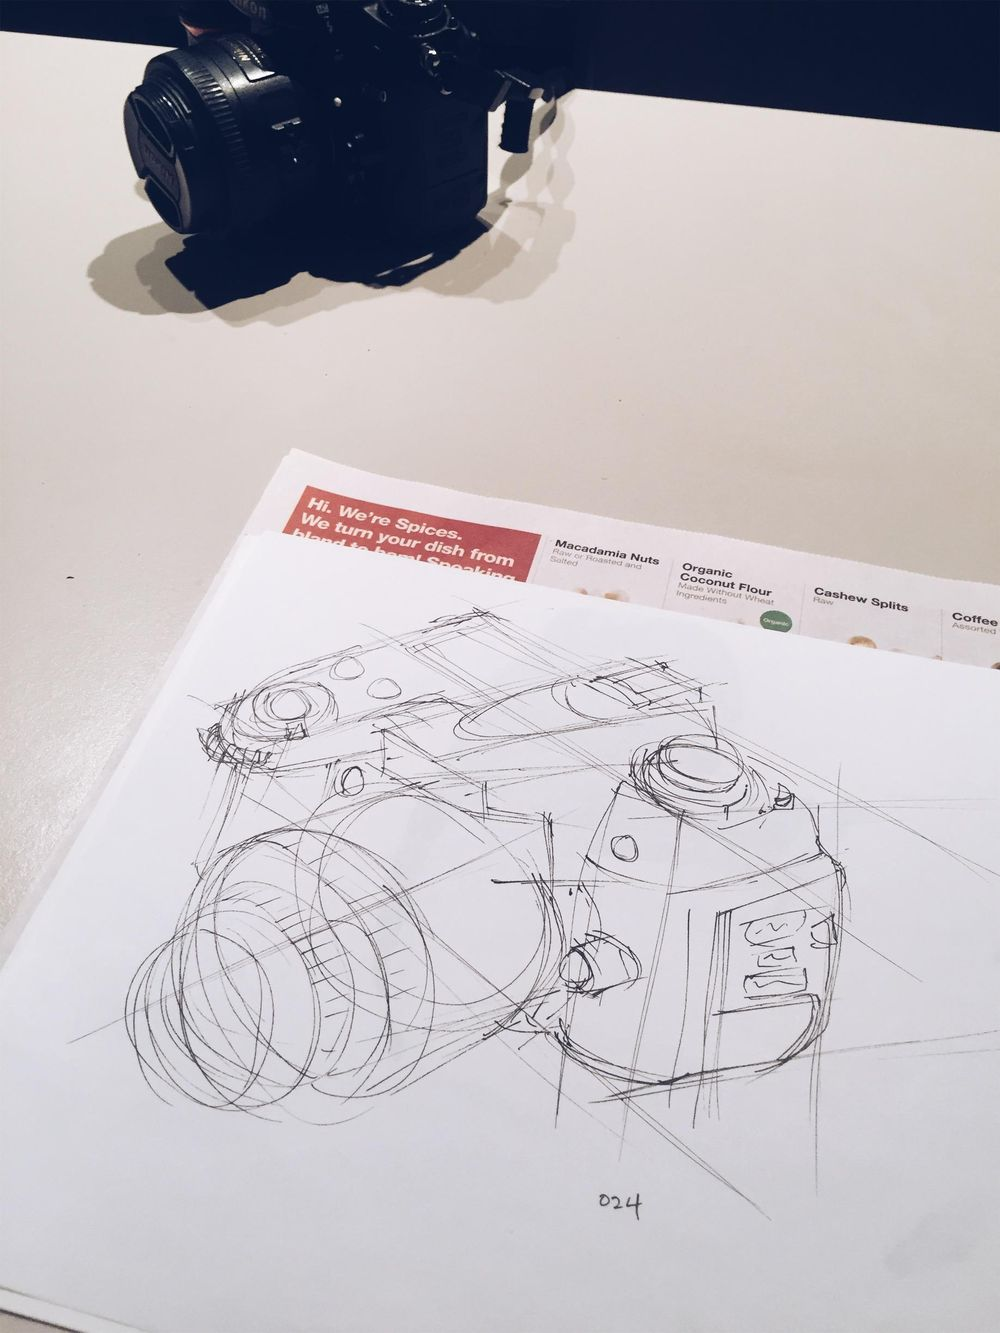 Sketching a DSLR - image 3 - student project